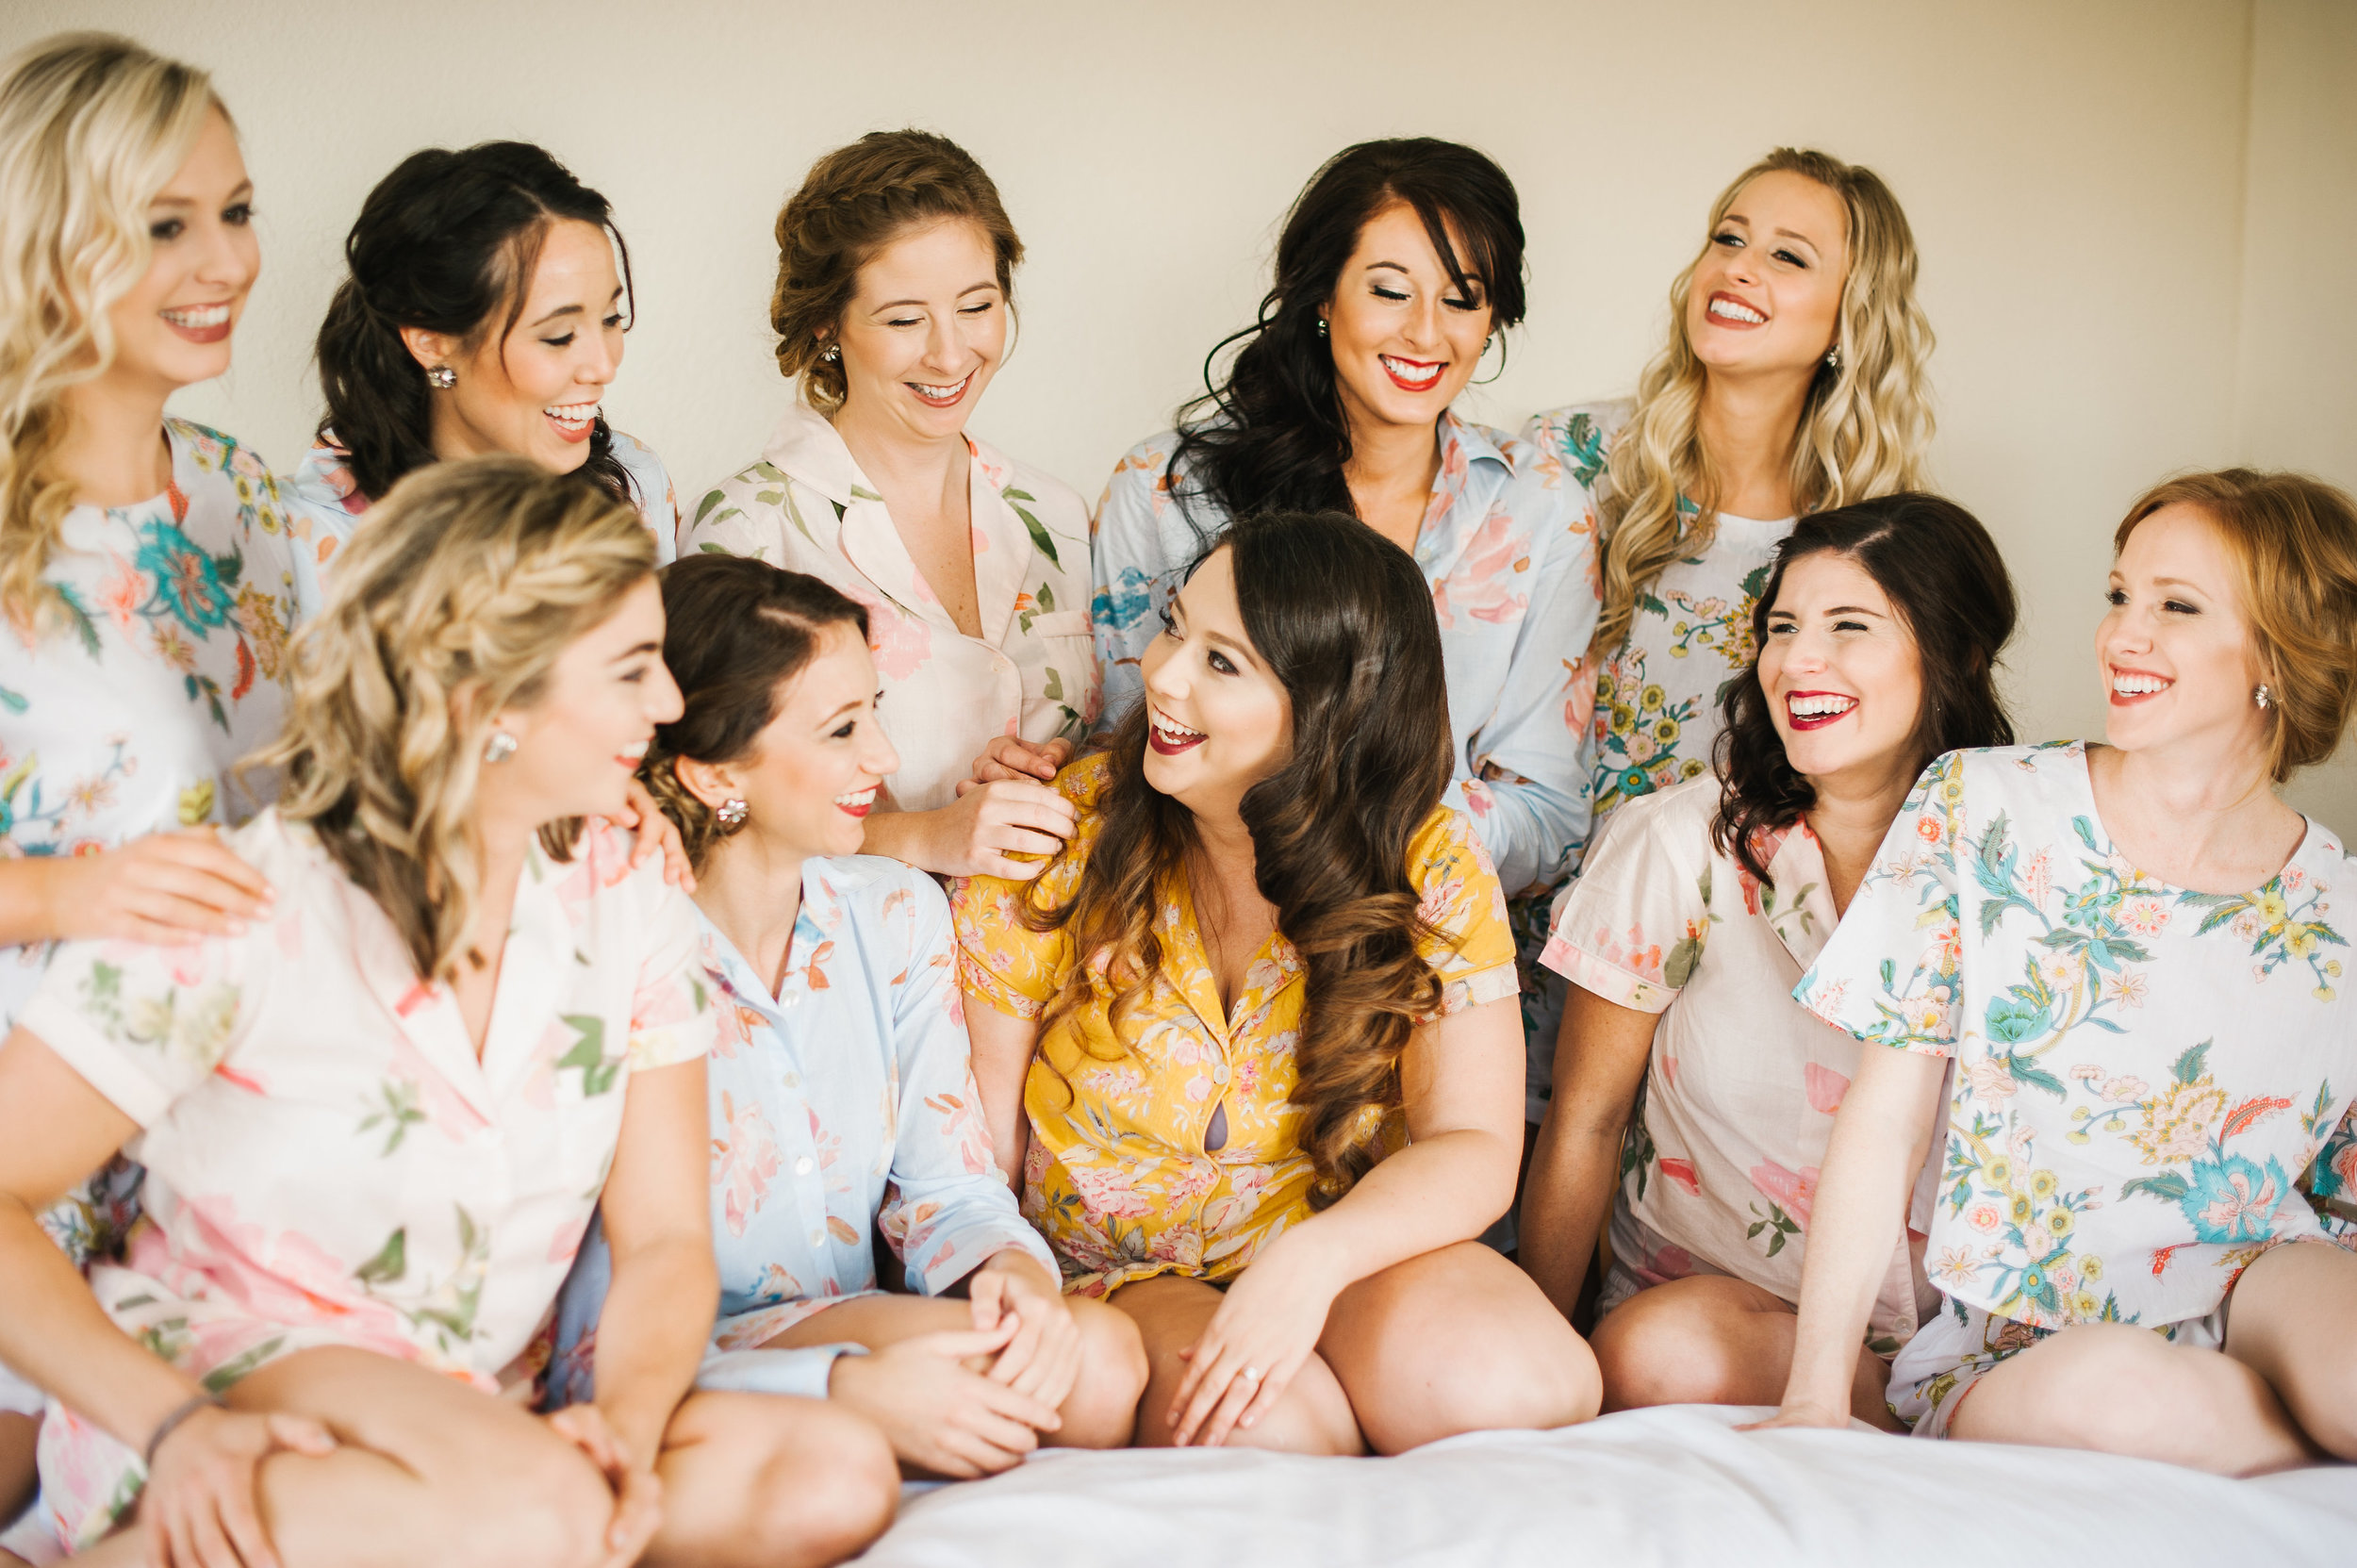 The bride and her closest girls getting ready, and looking adorable, in their mismatched floral pajamas!